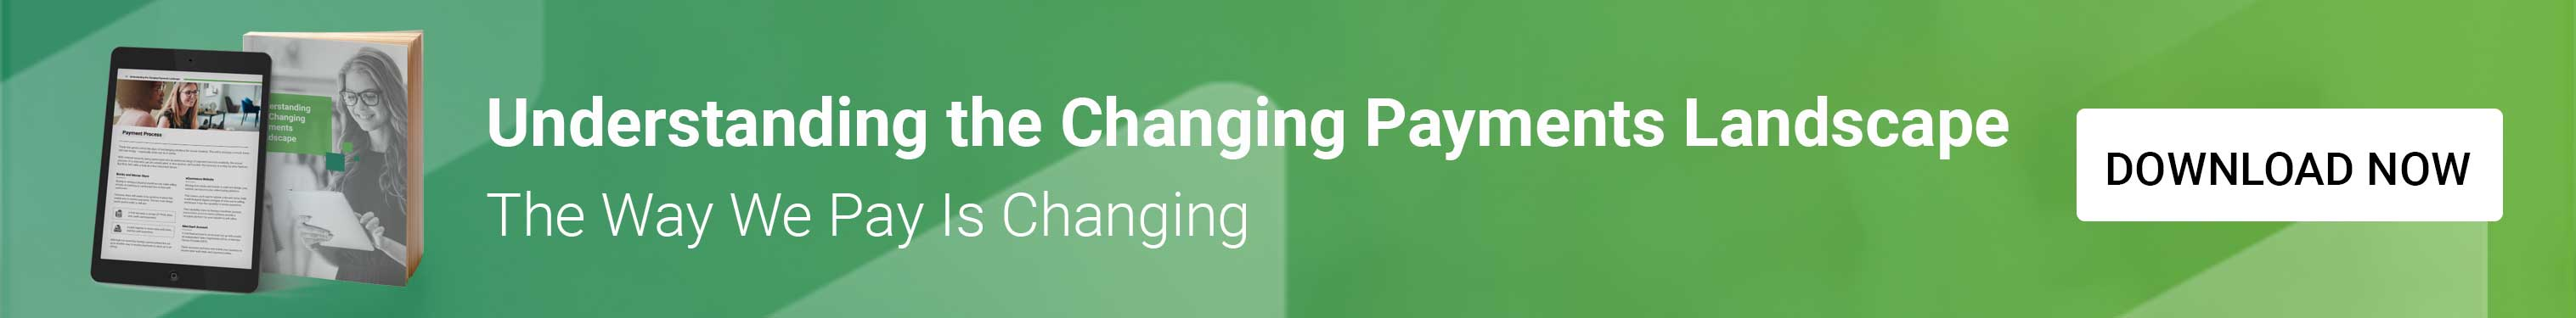 the-way-we-pay-is-changing